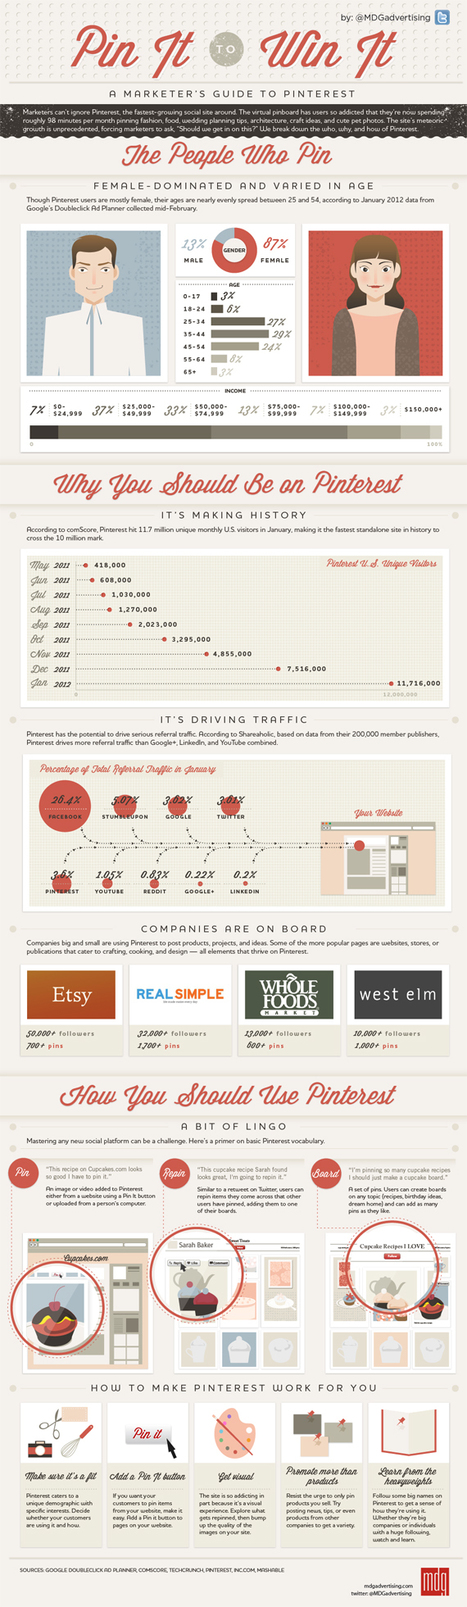 The Marketer's Guide To Pinterest #Infographic | Social Media Headlines | Scoop.it